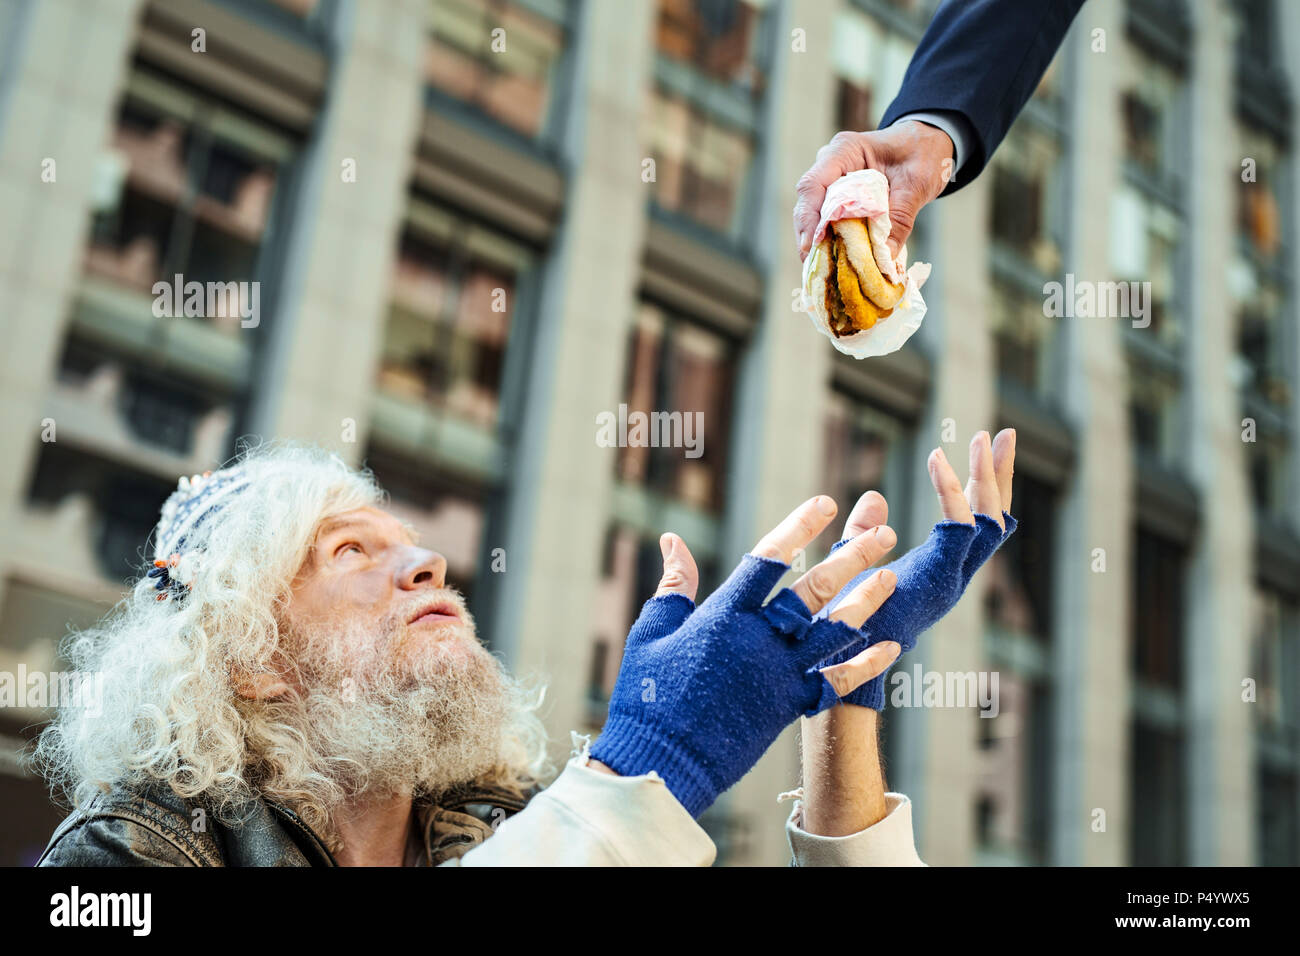 Street person begging for some food sitting near office center - Stock Image